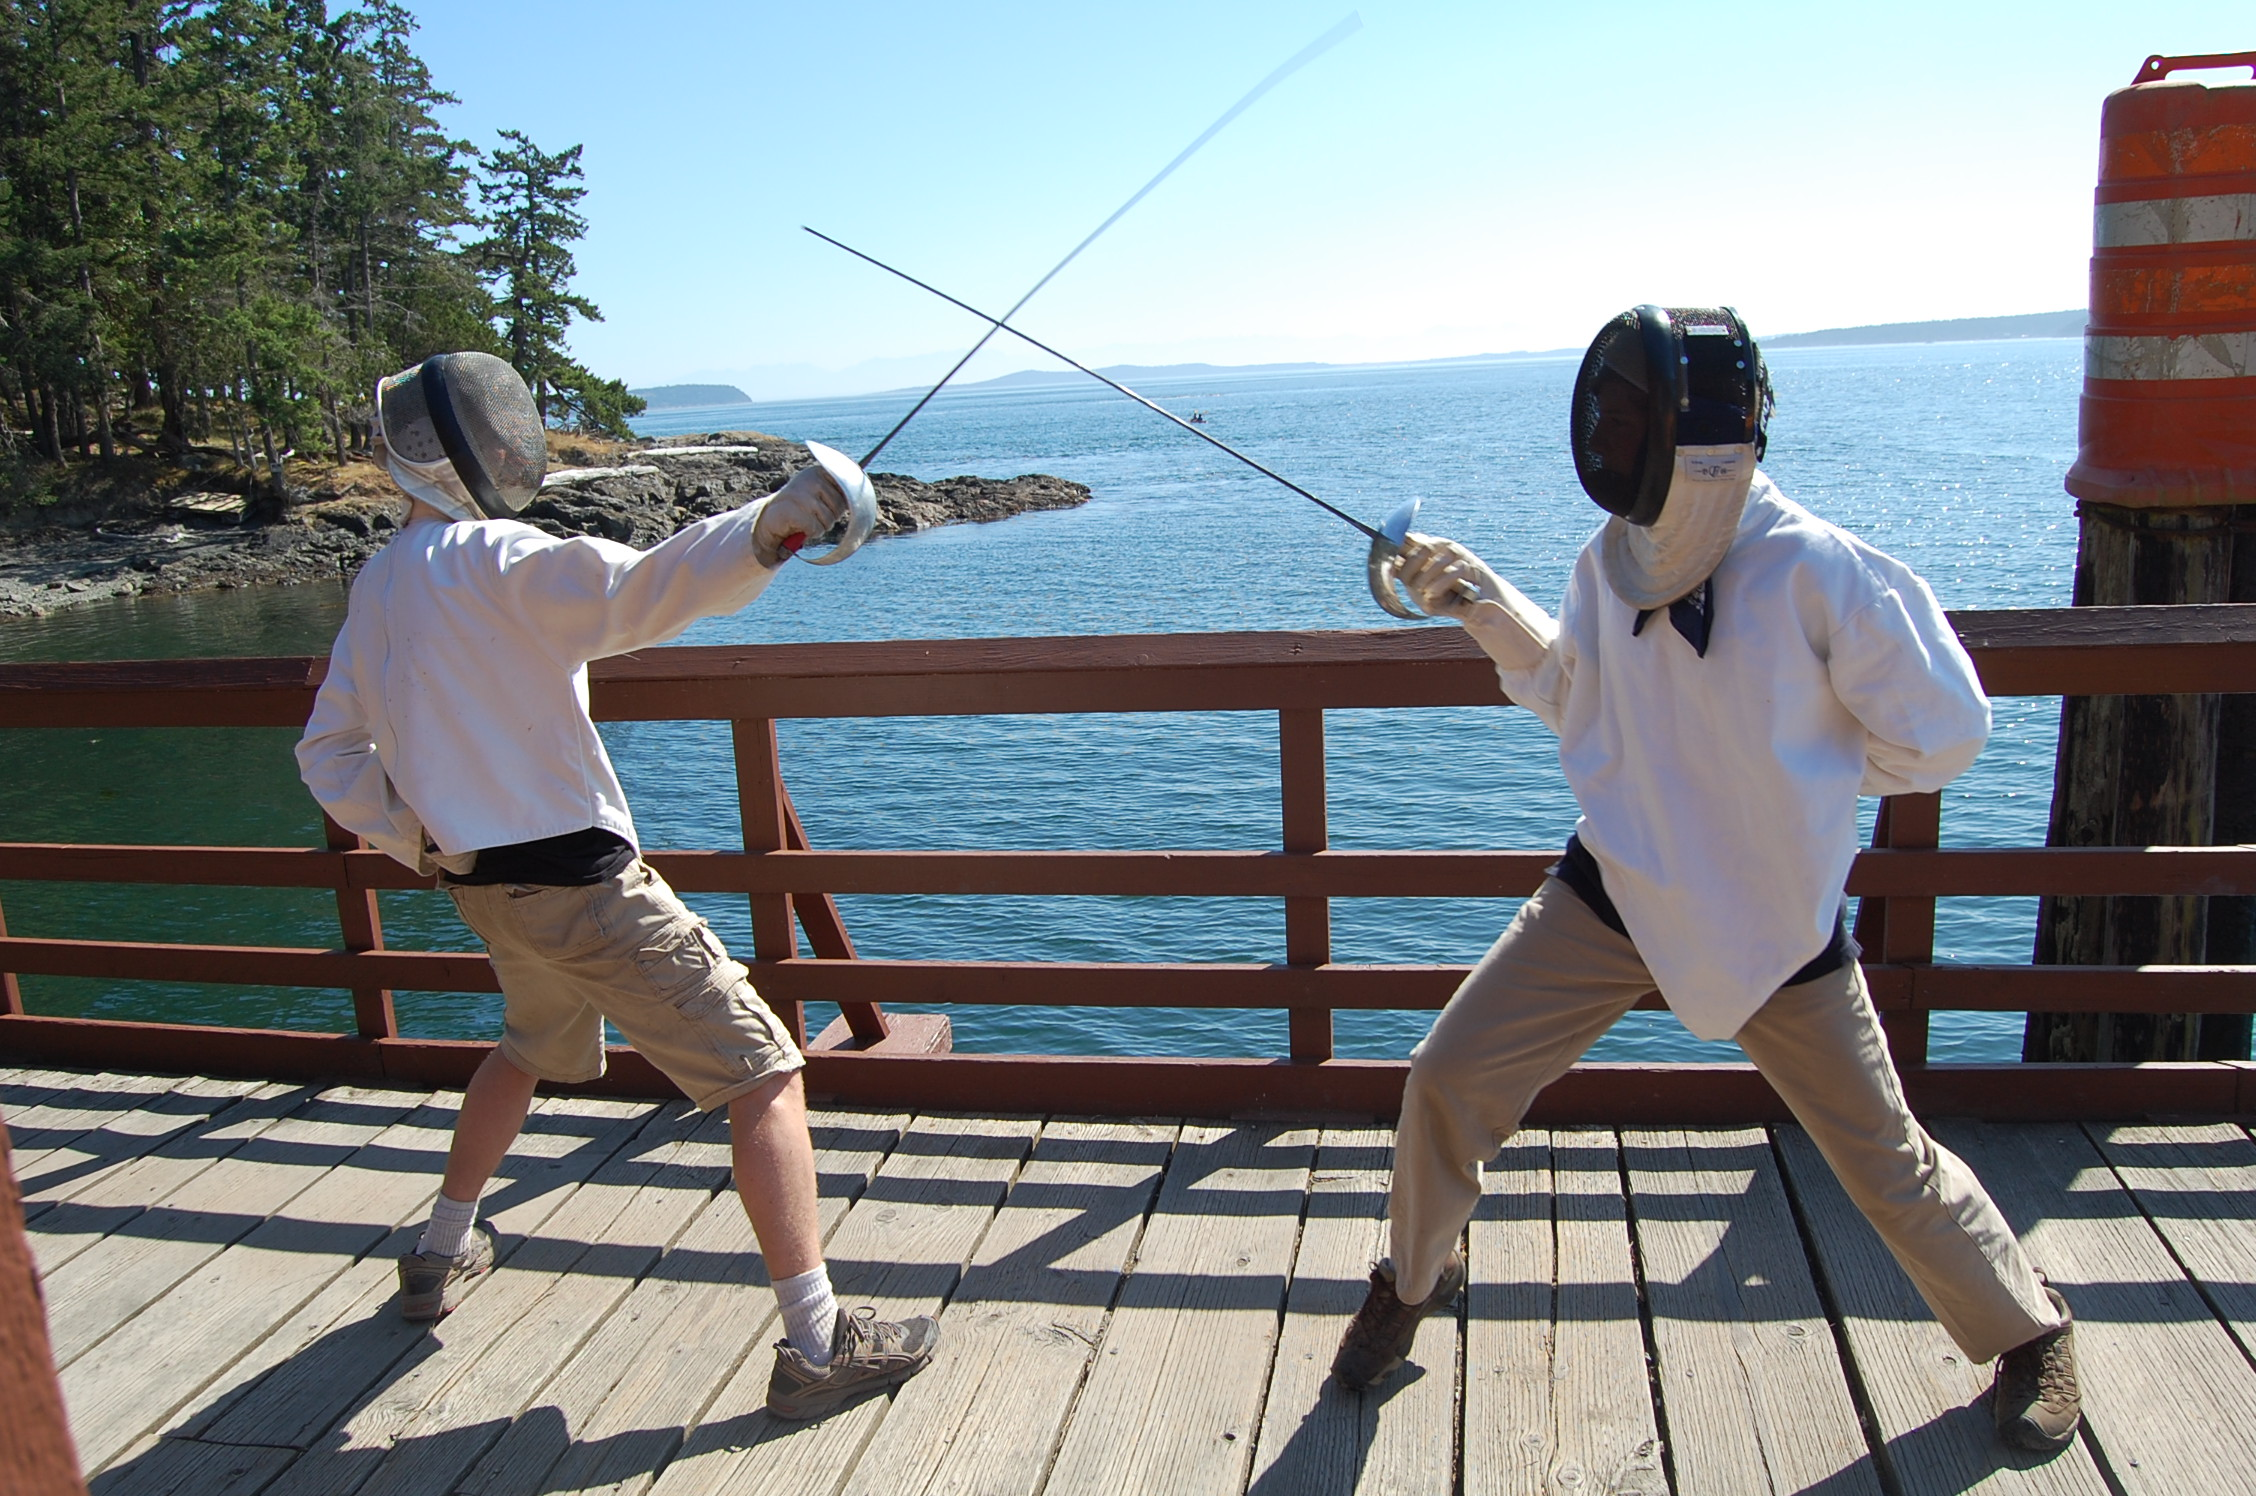 fencing at canoe island french camp